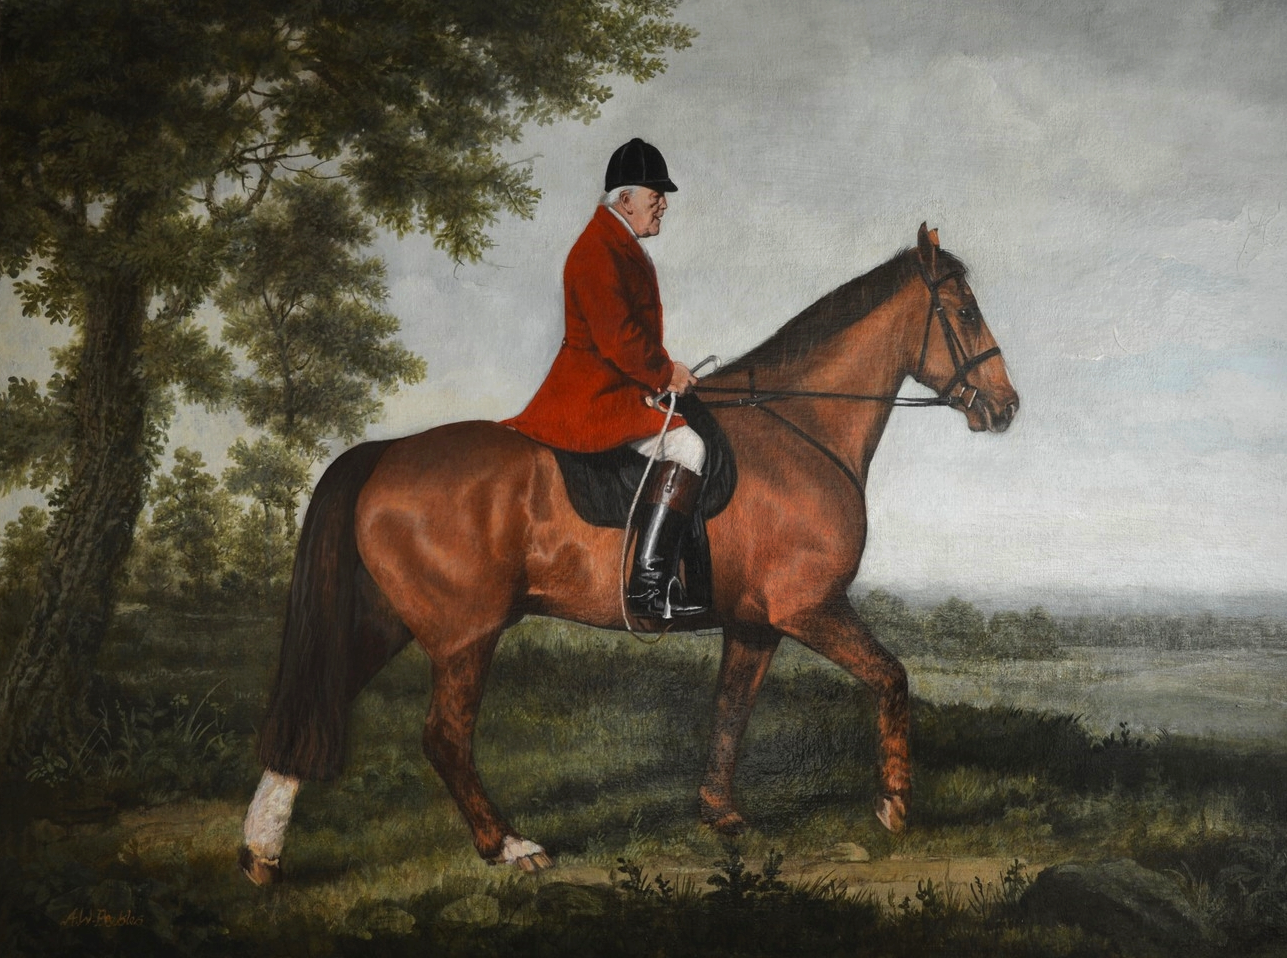 Gentleman in Hunting Pink on horseback in '18th Century' style landscape. Acrylic on canvas.